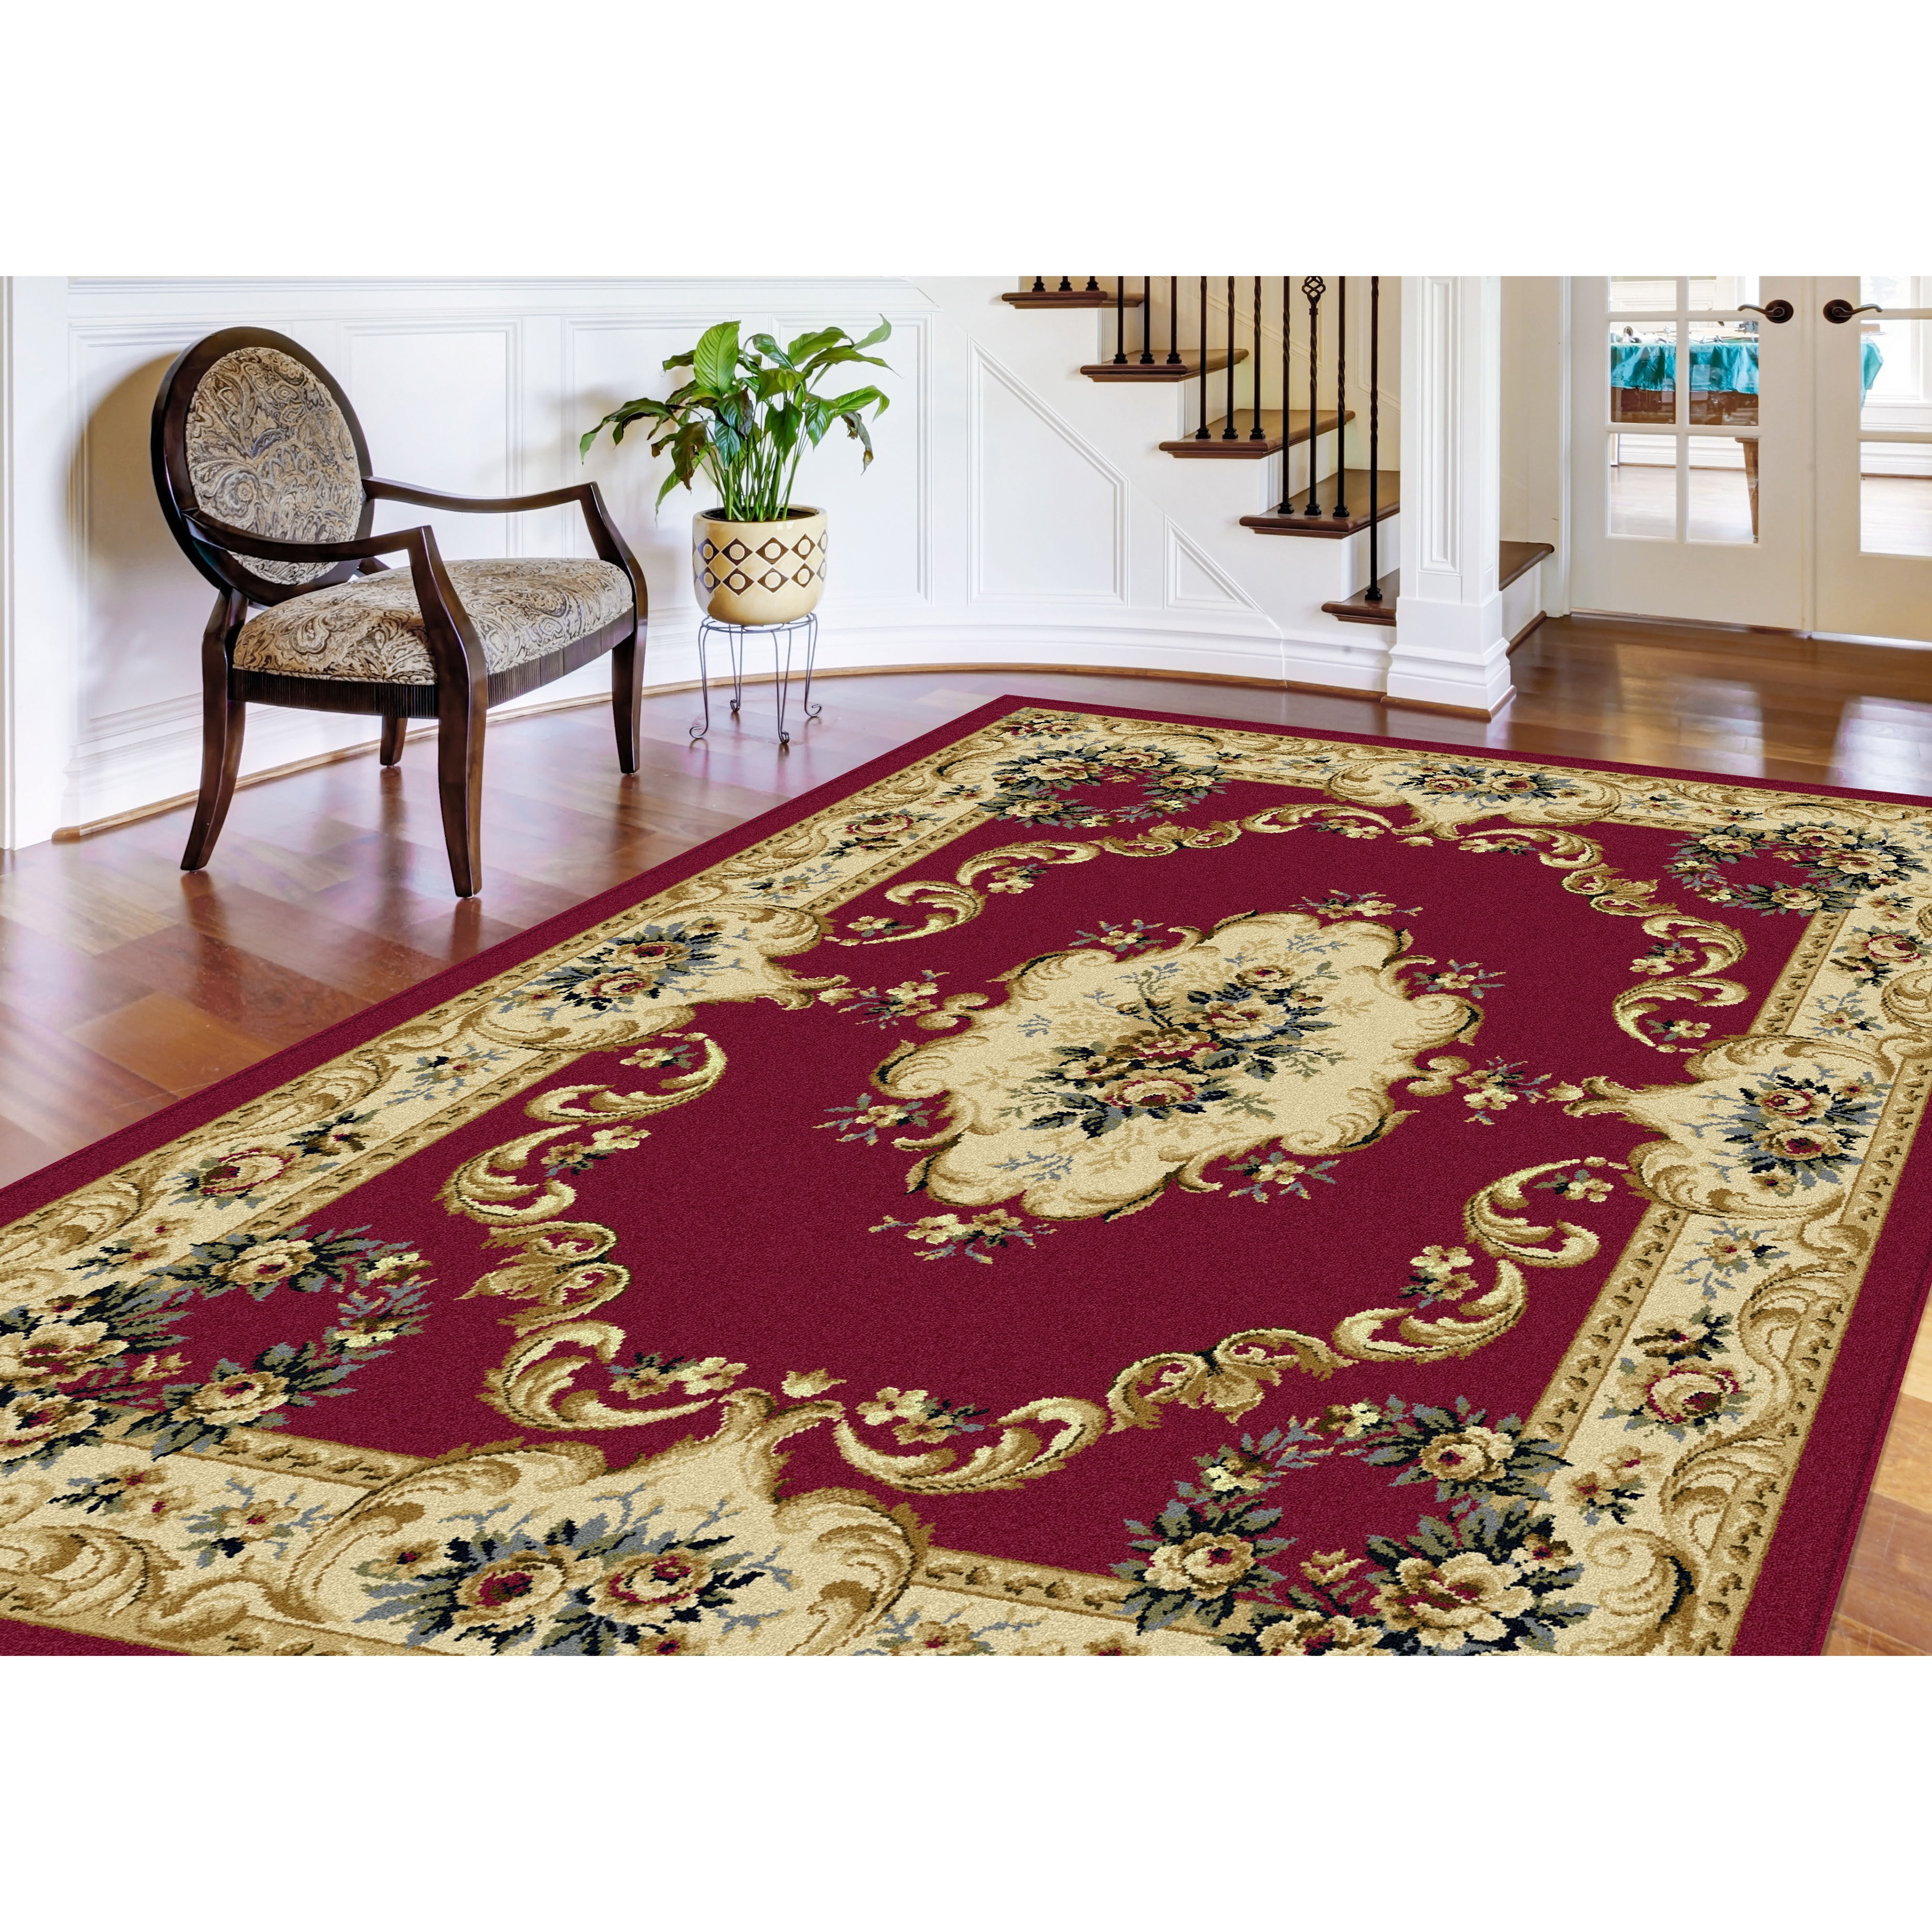 Lagoon 3-piece Red Traditional Area Rug Set